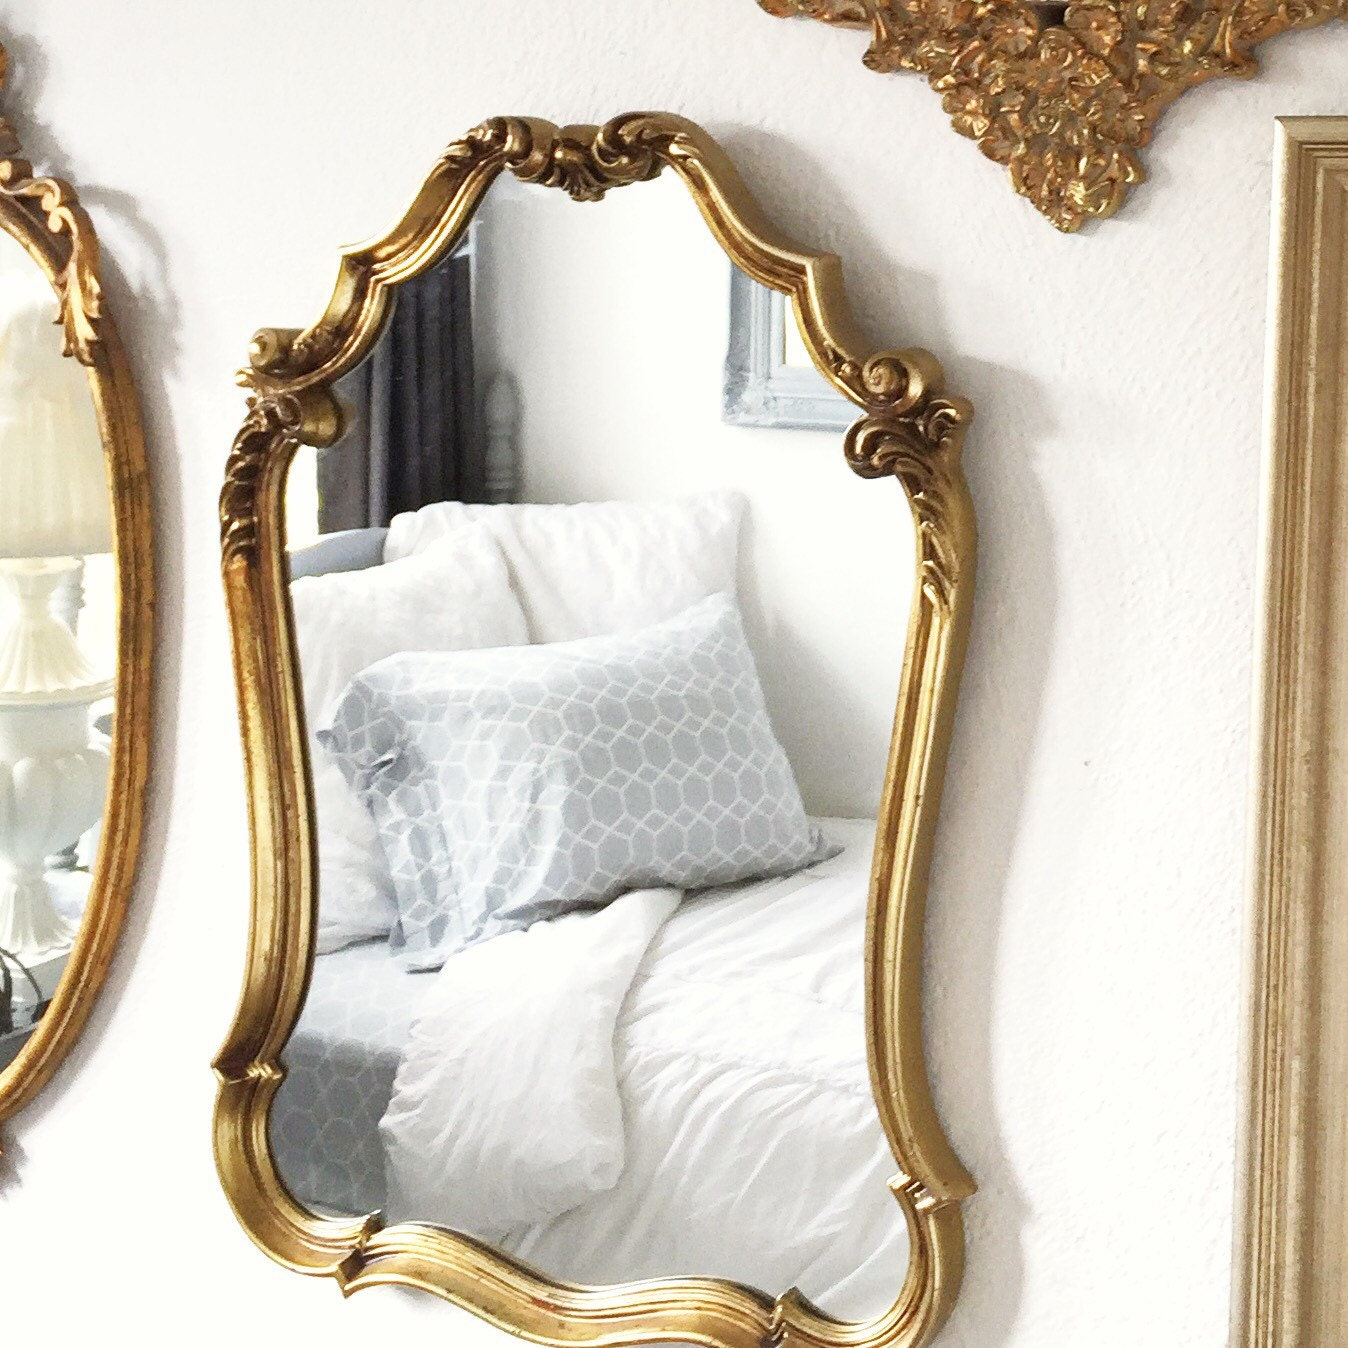 Large ornate mirror gold mirrors hollywood regency baroque for Baroque mirror